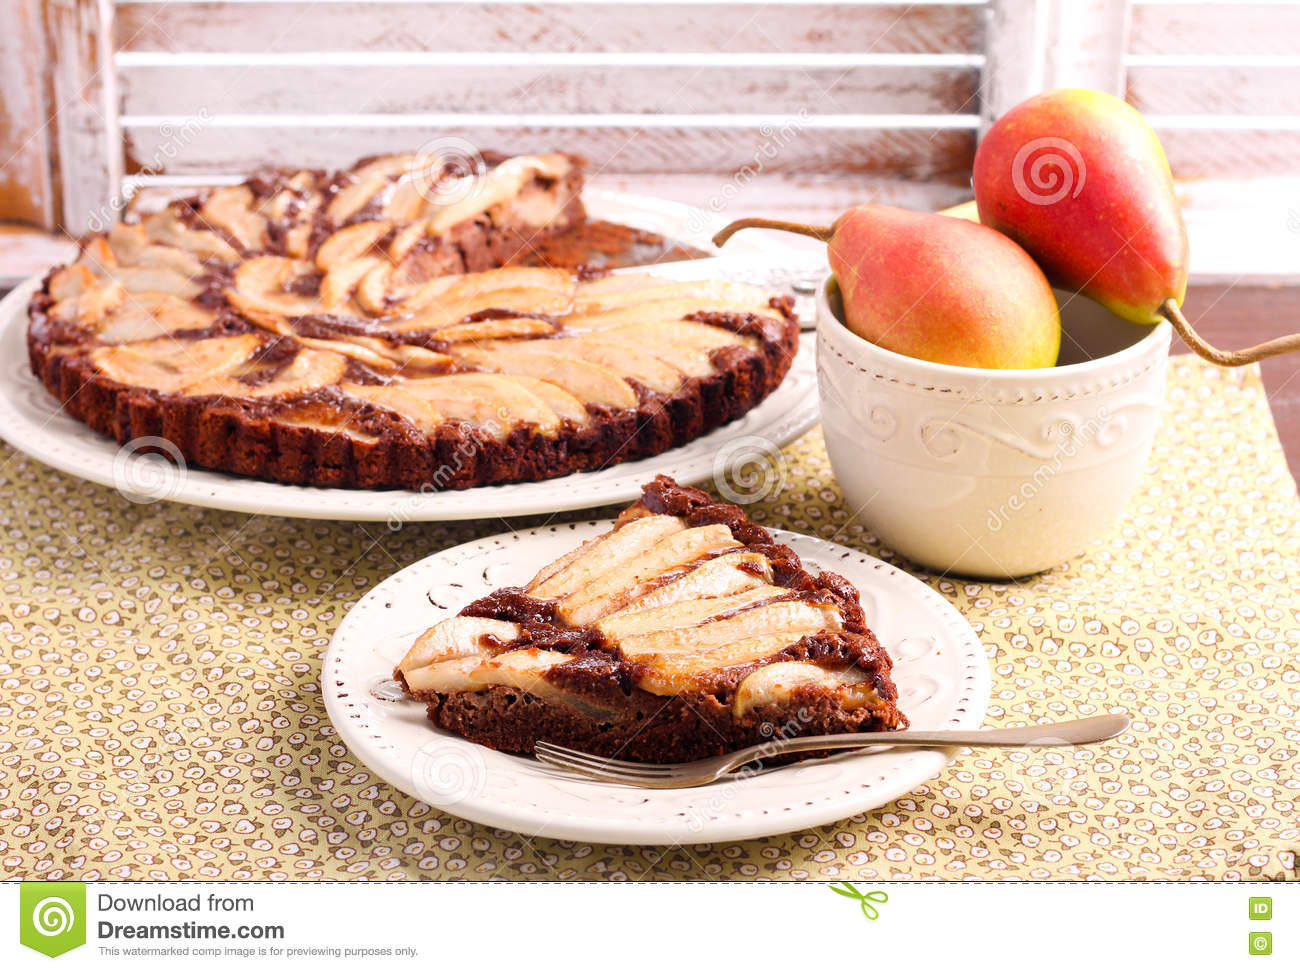 Chocolate and almond tart with pear